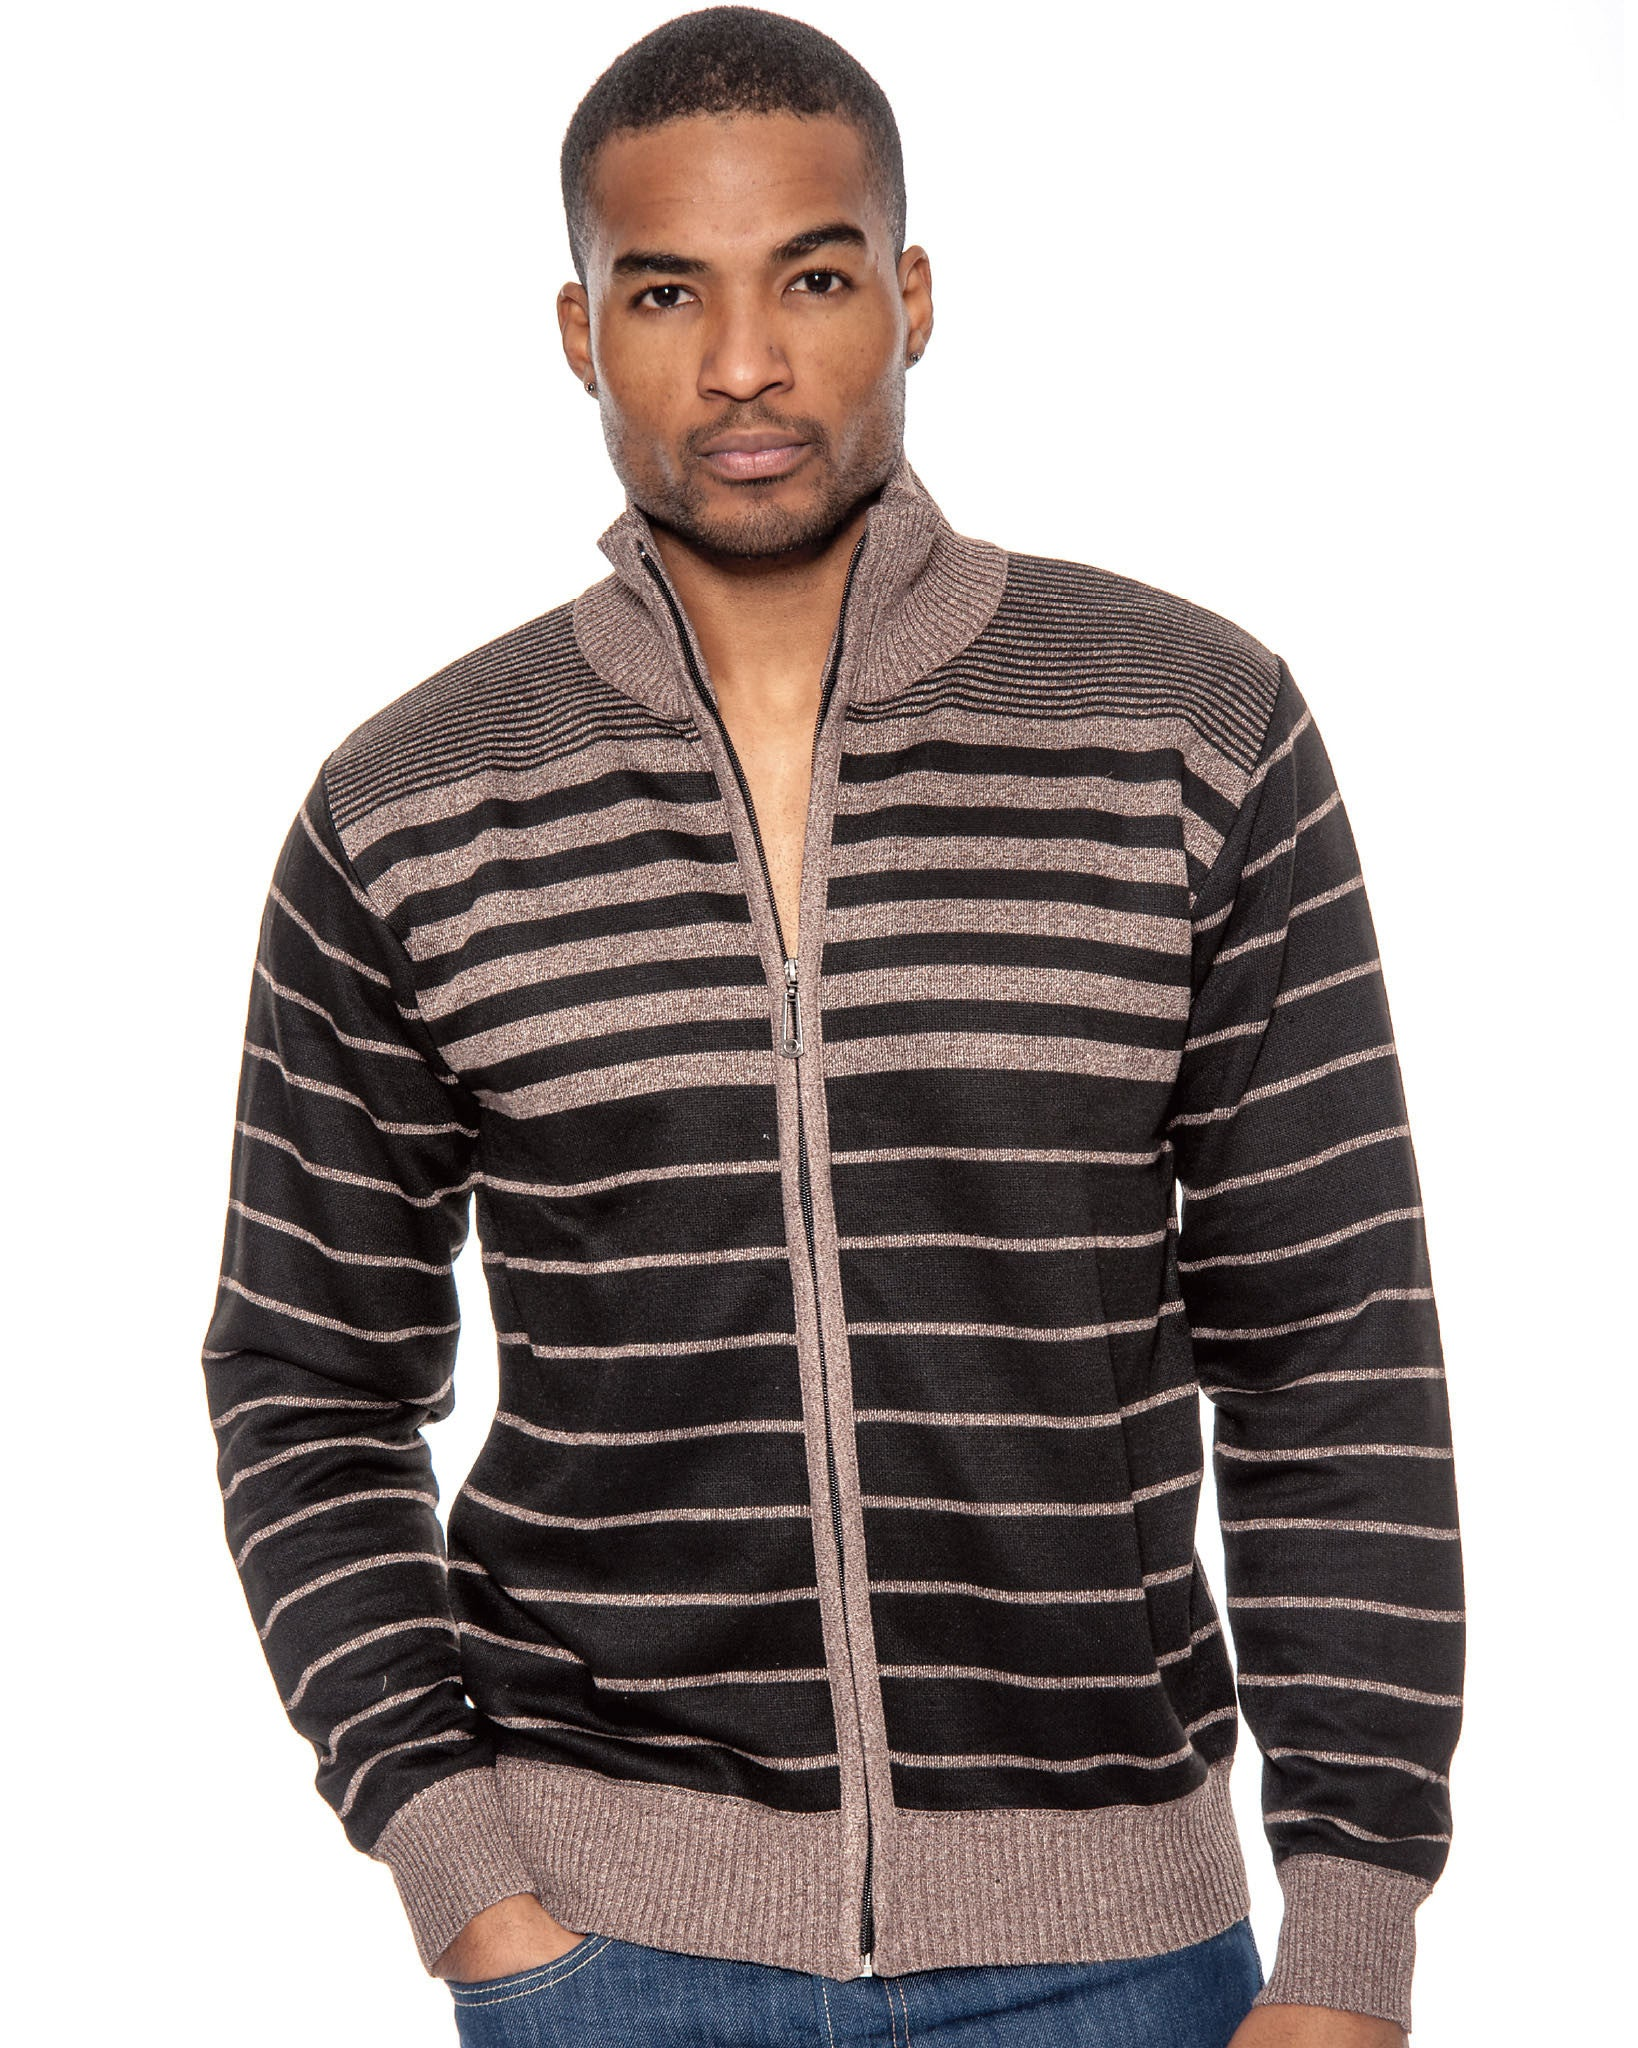 True Rock Mens Striped Full Zipper Knit Sweater Jacket | Brown Black